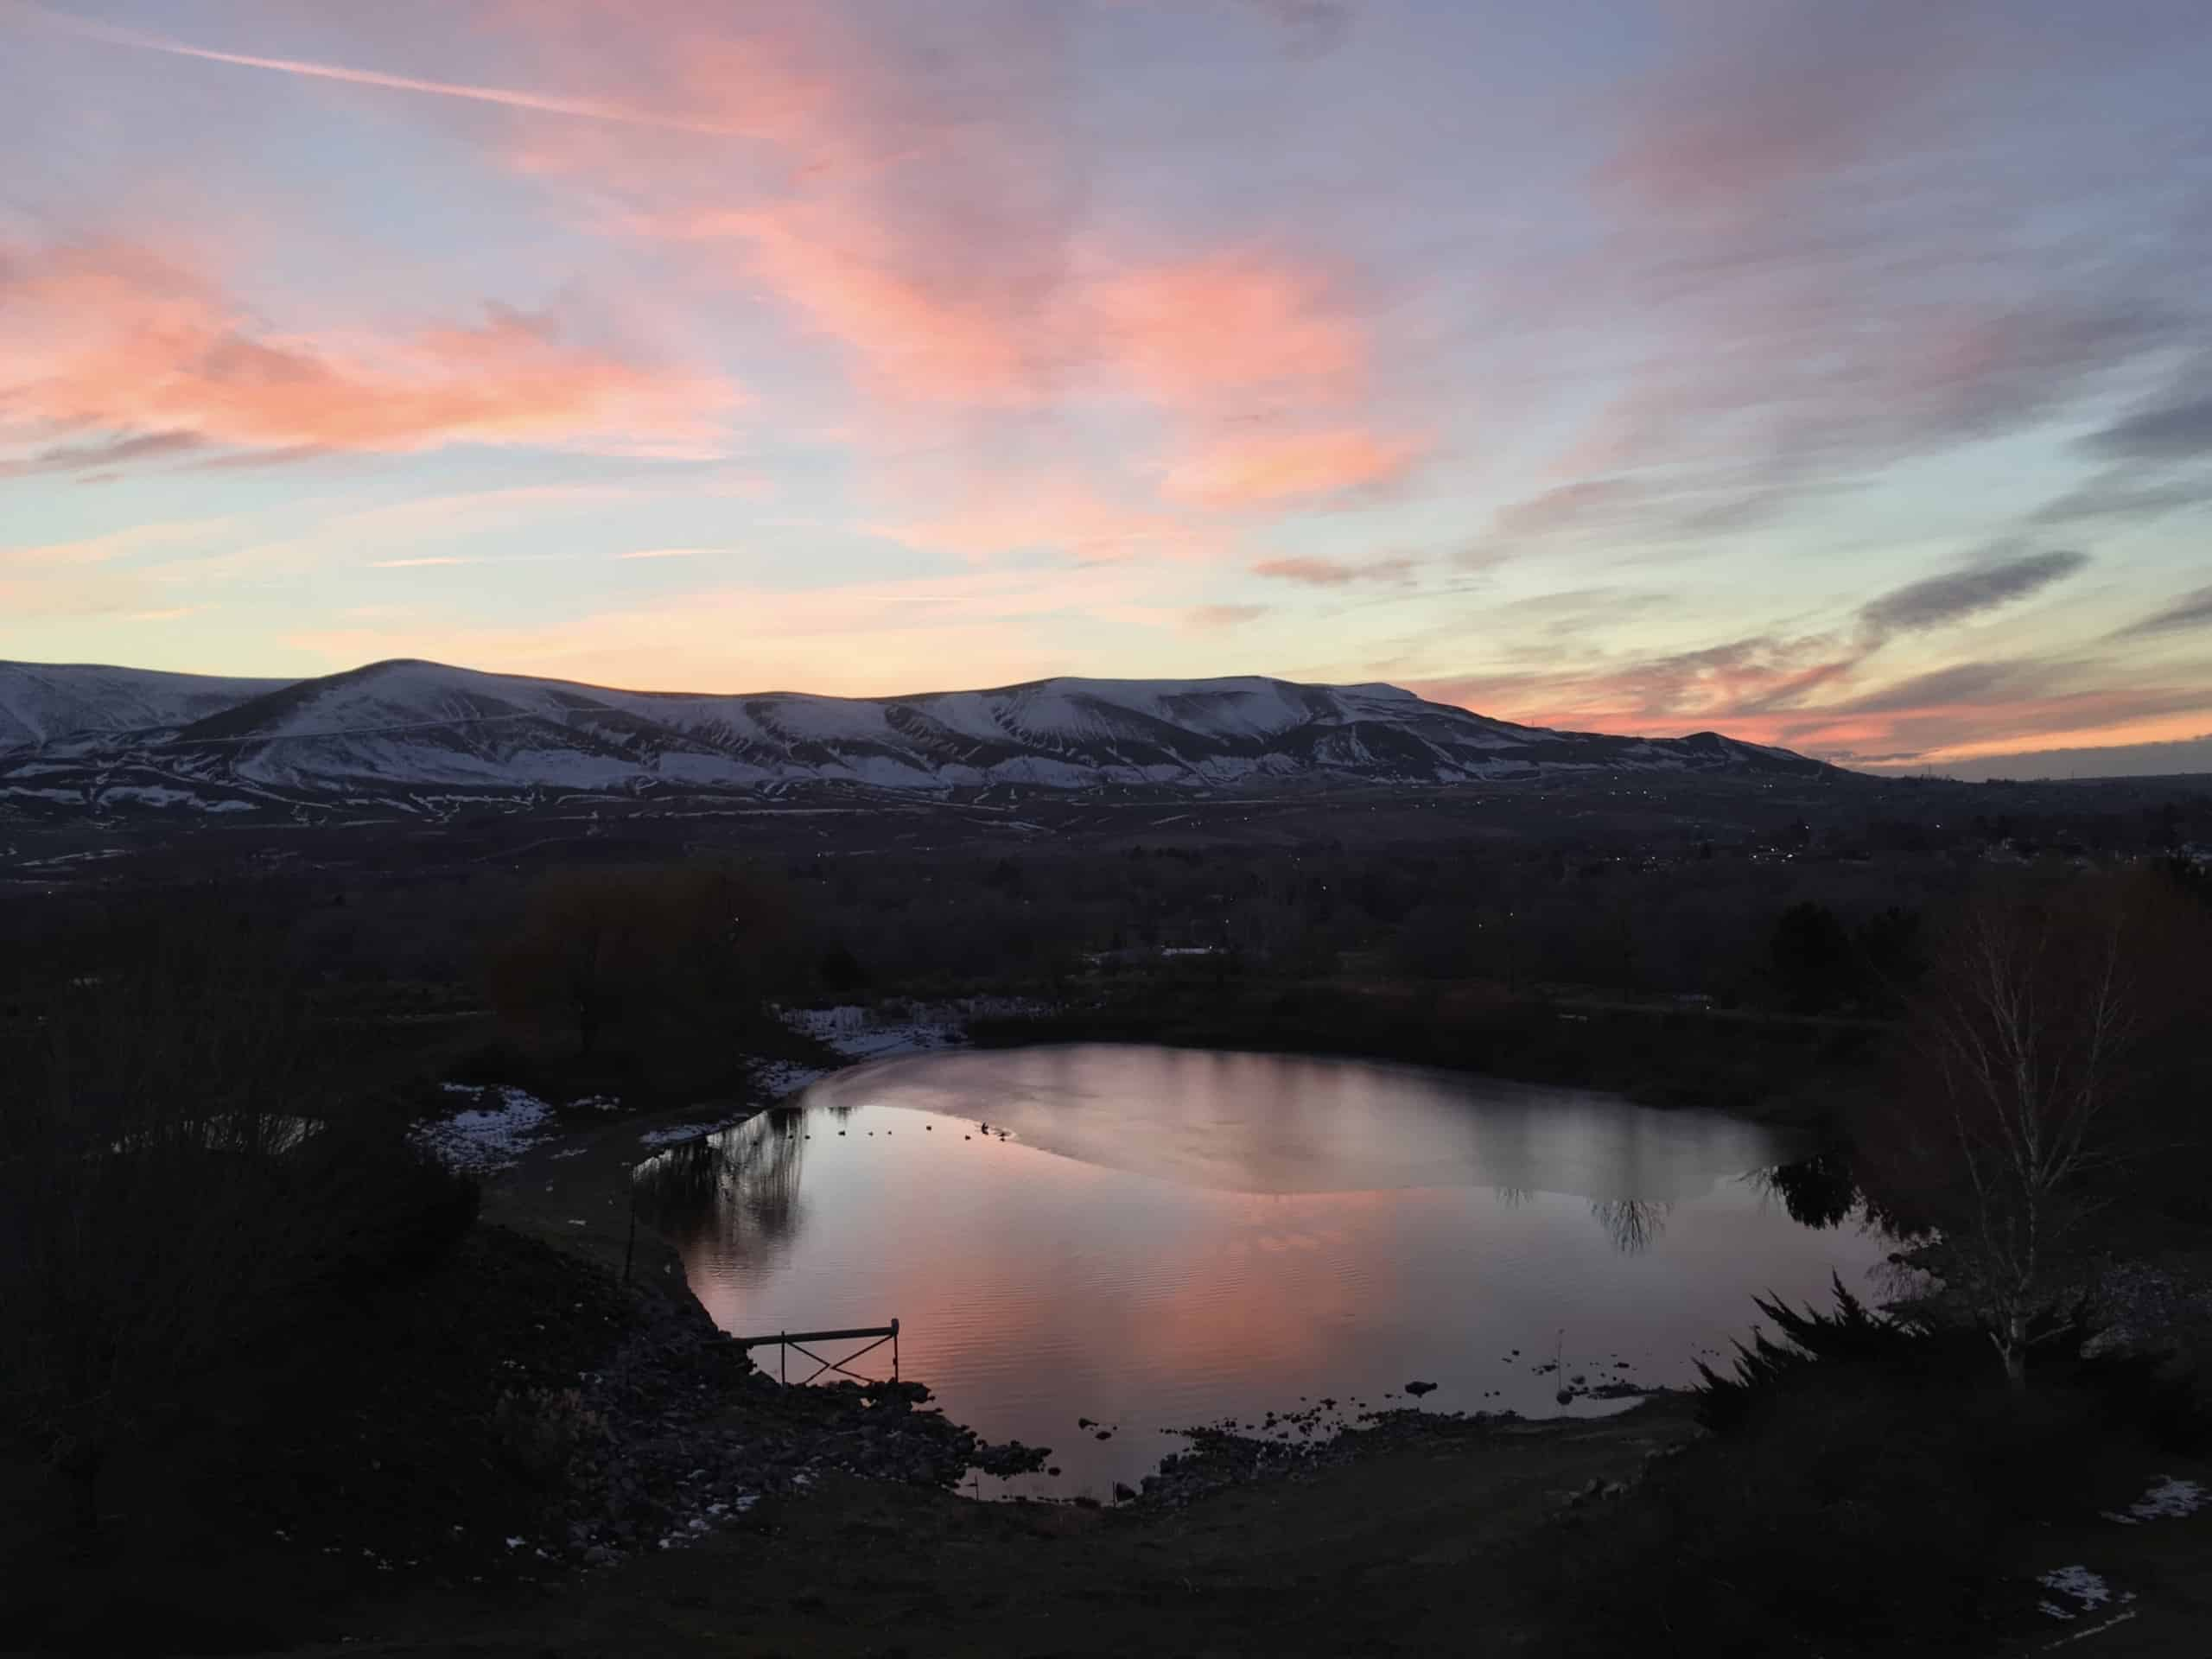 Pink clouds falling over the landscape of mountains and a lake area